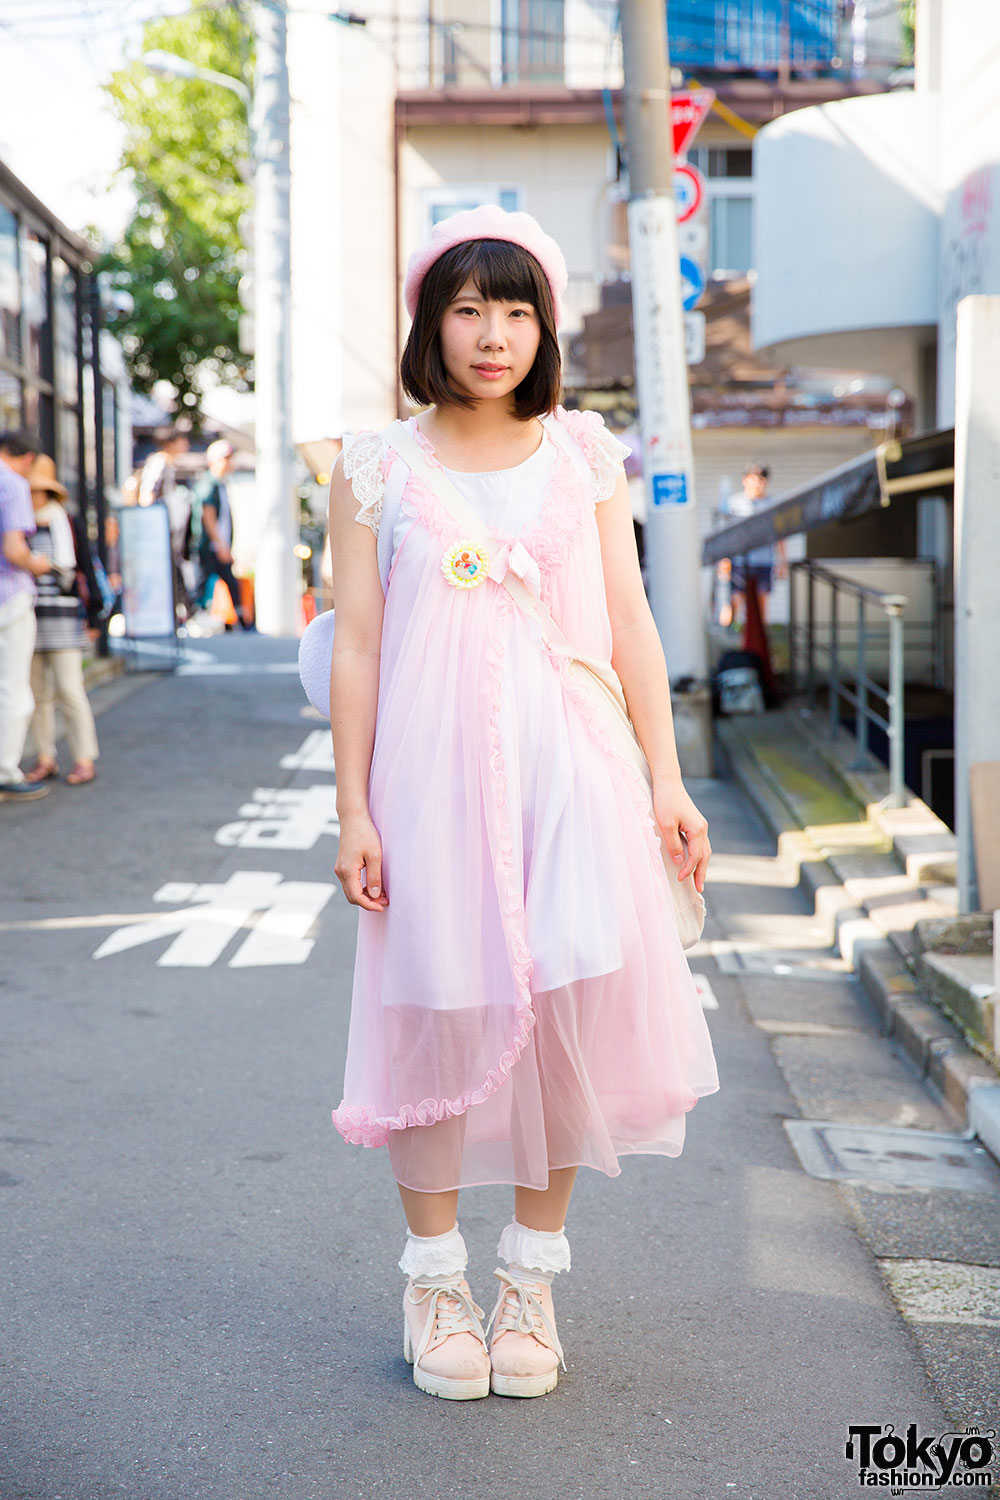 Harajuku Pastel Lingerie Style W/ Pink Negligee, Beret